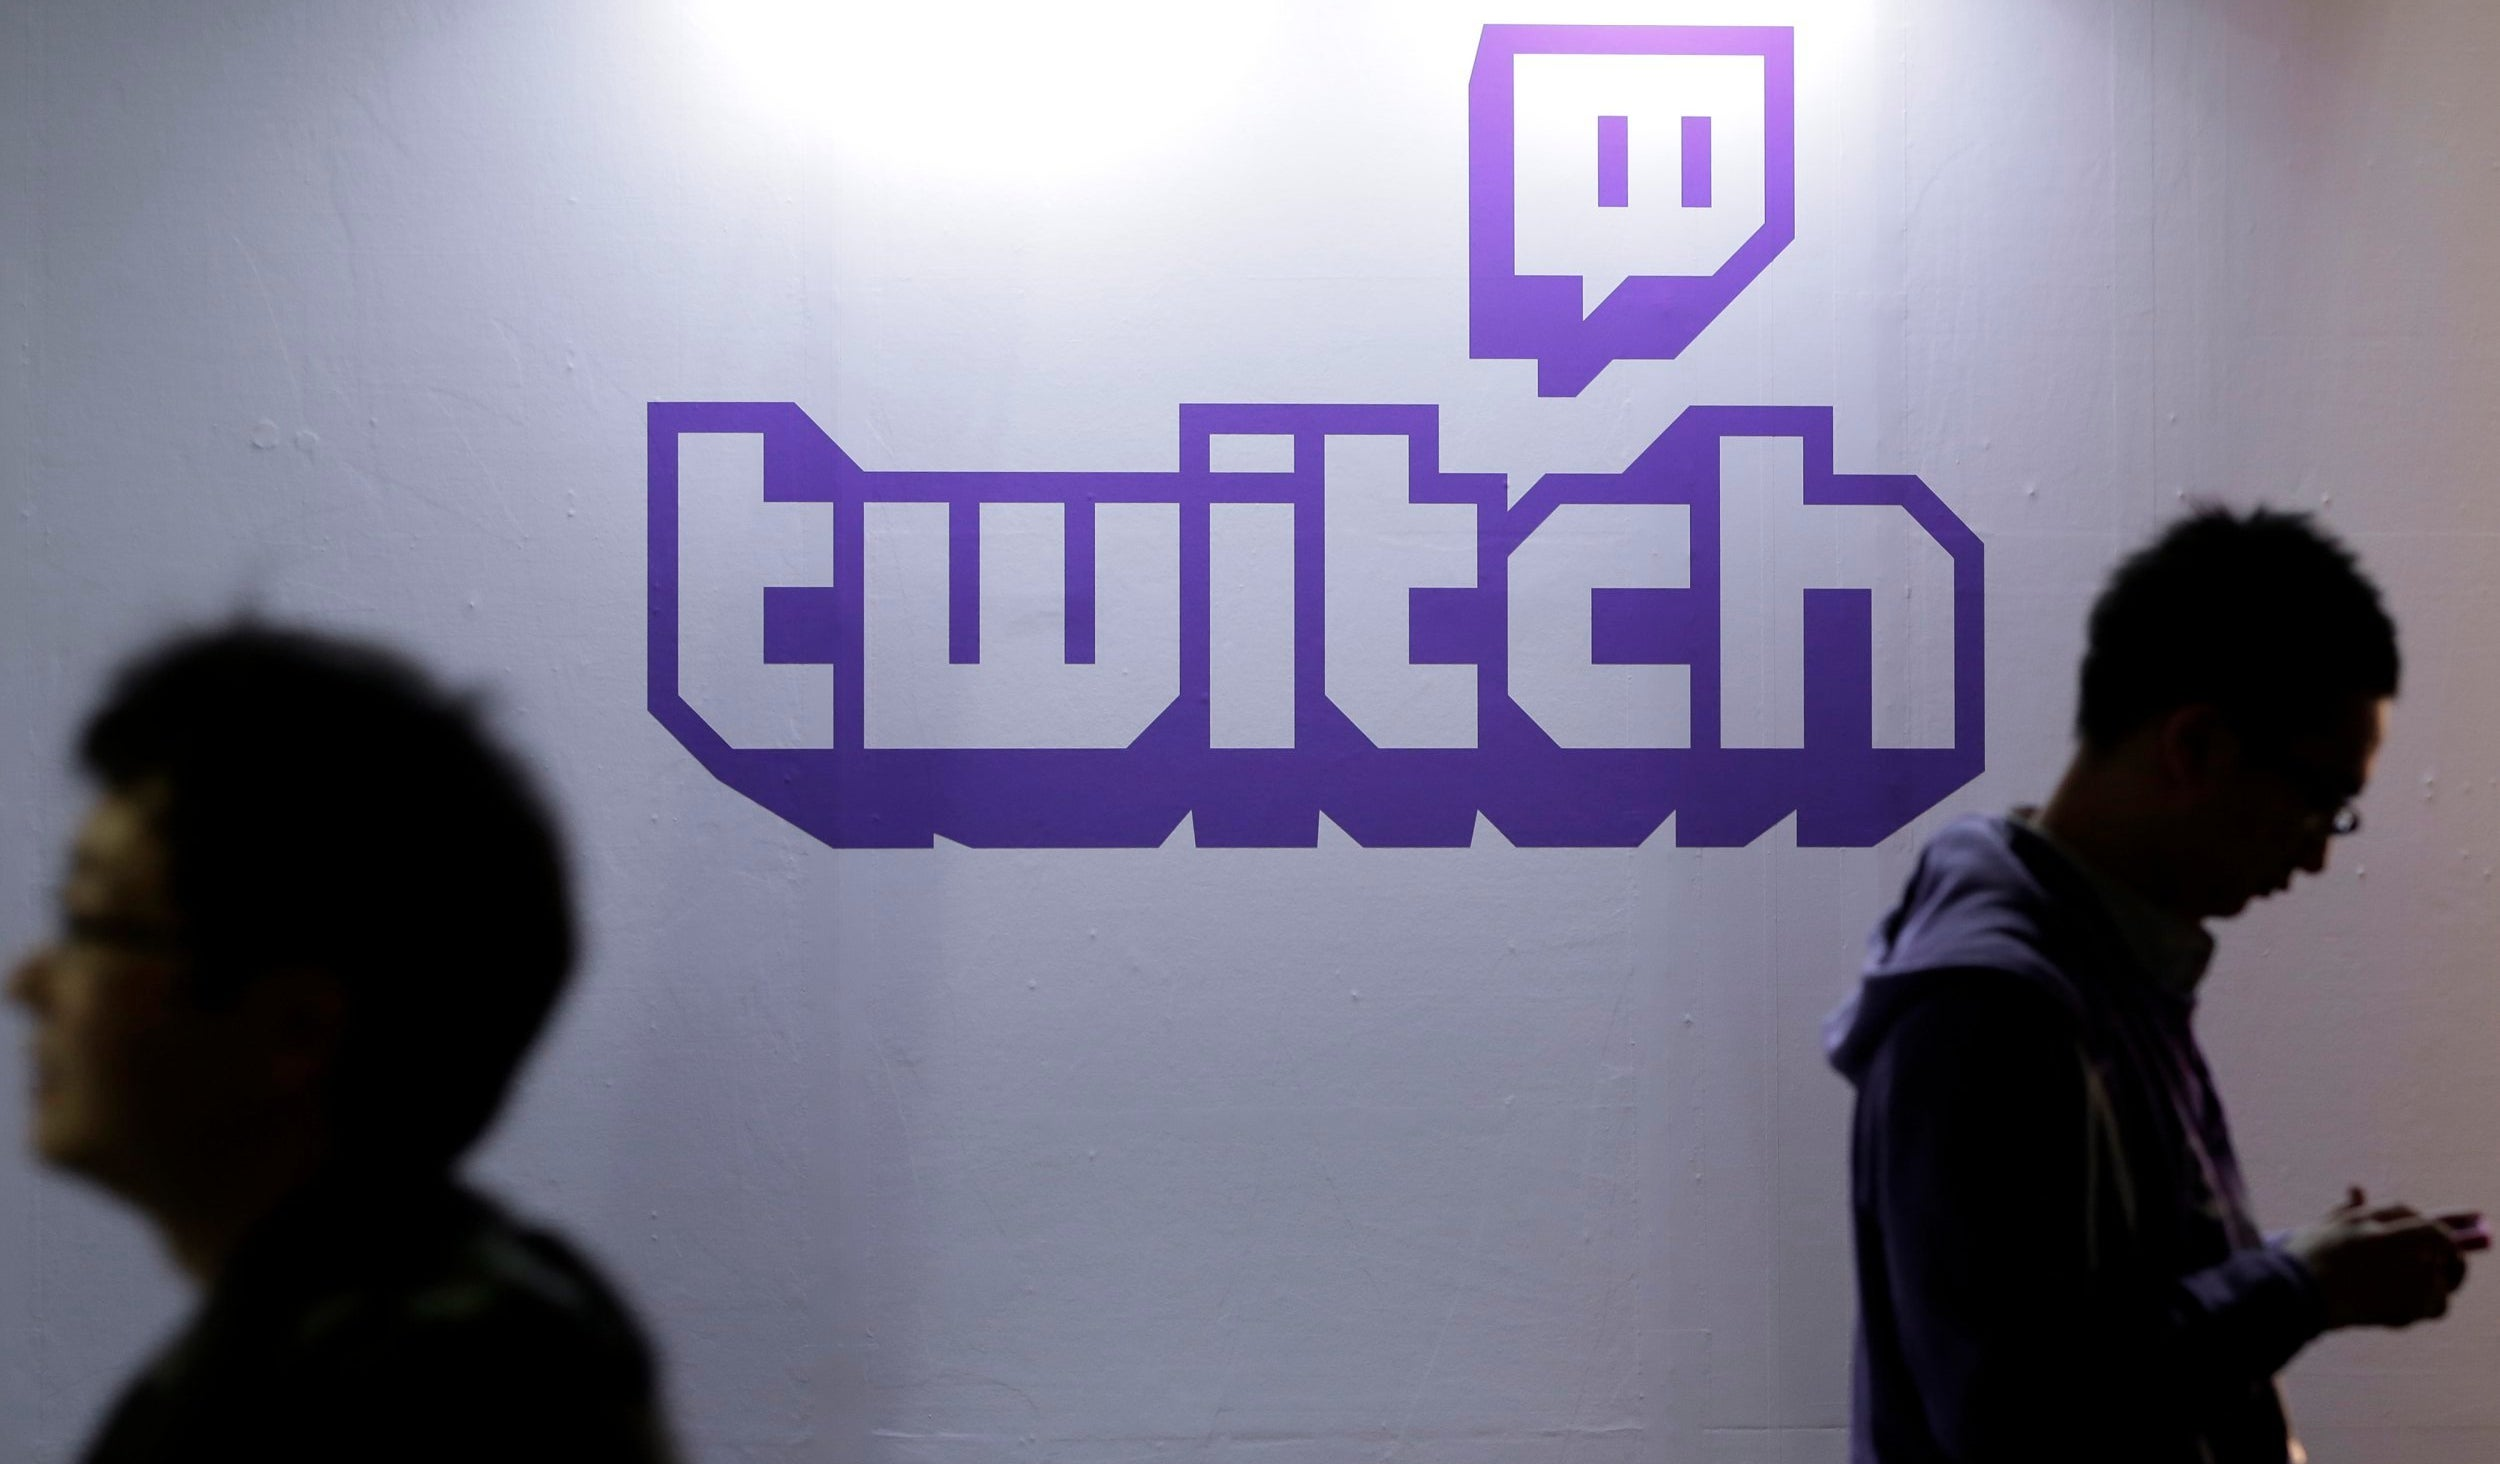 As Police Investigate Threats To Twitch Offices, Employees Told To Work From Home